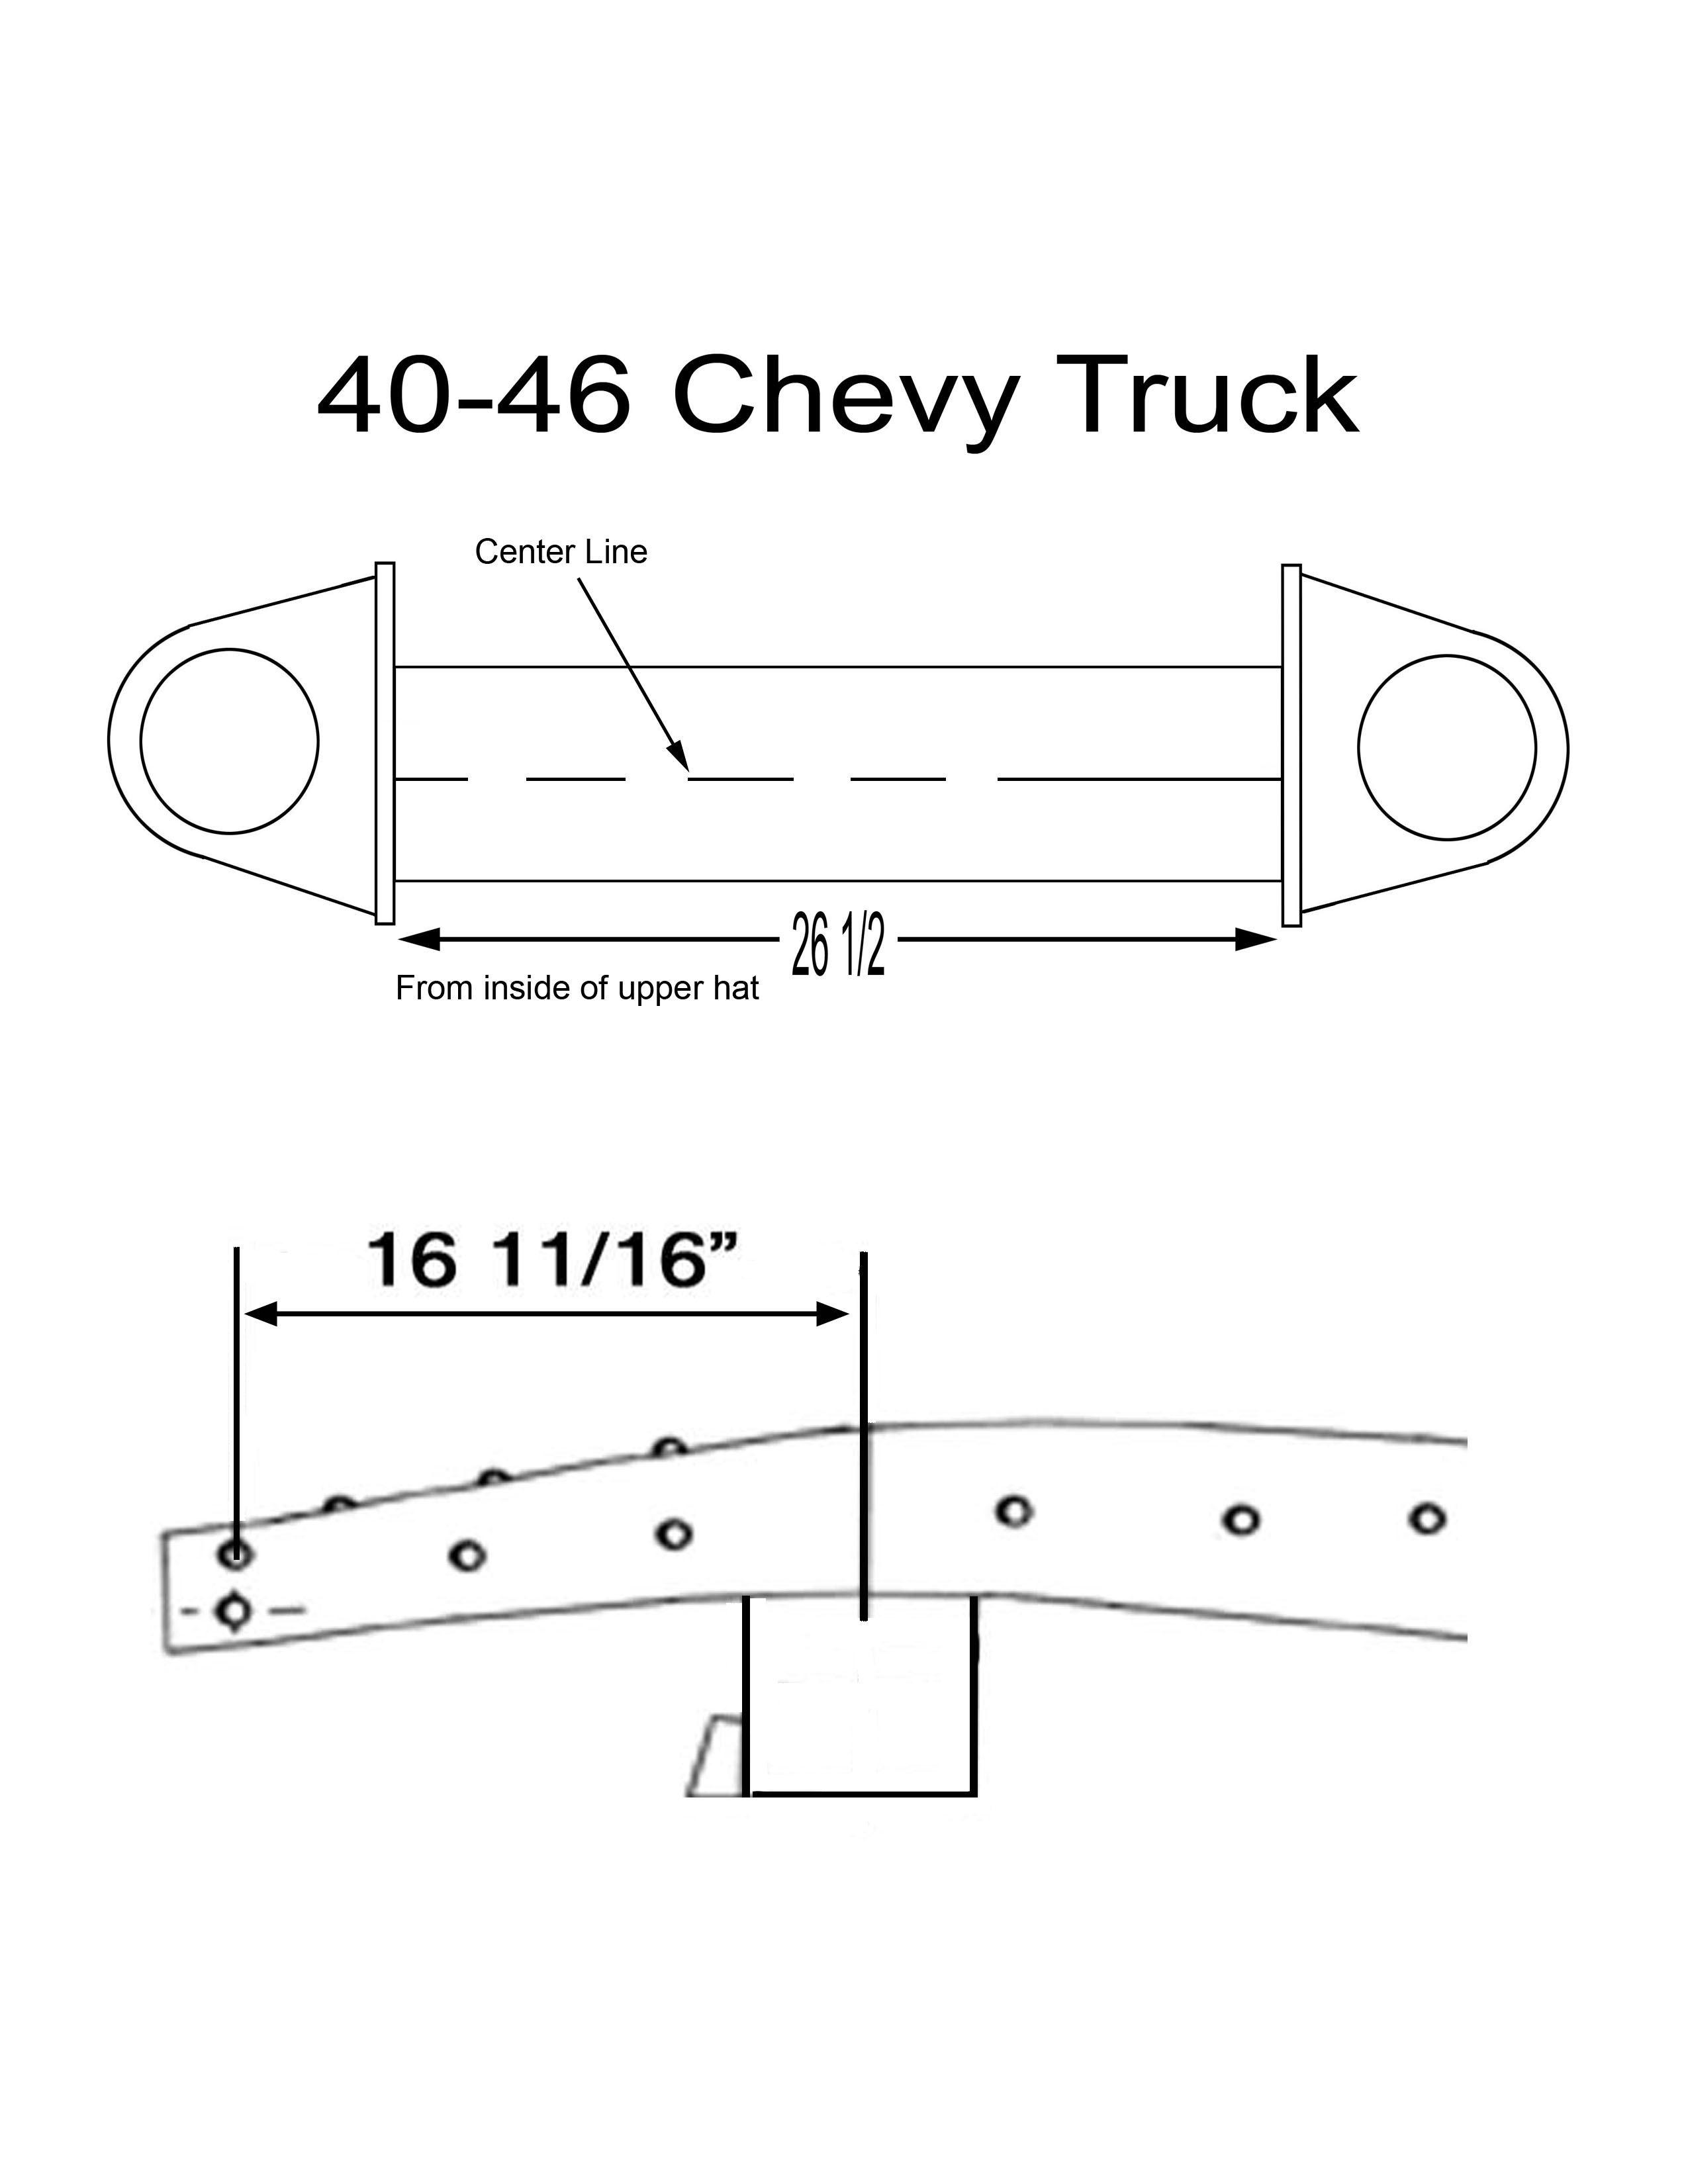 40 46 Chevy Truck Installation Pic